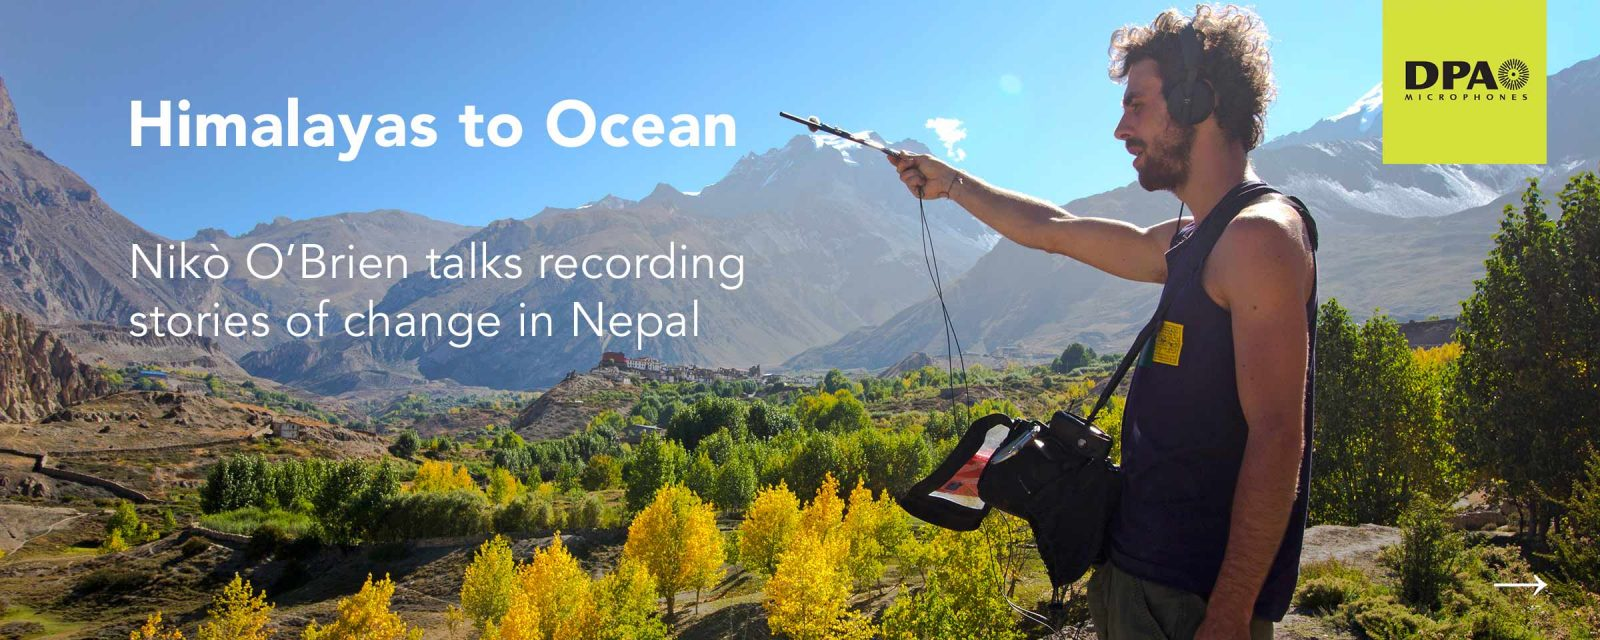 Himalayas to Ocean with Nikò O'Brien